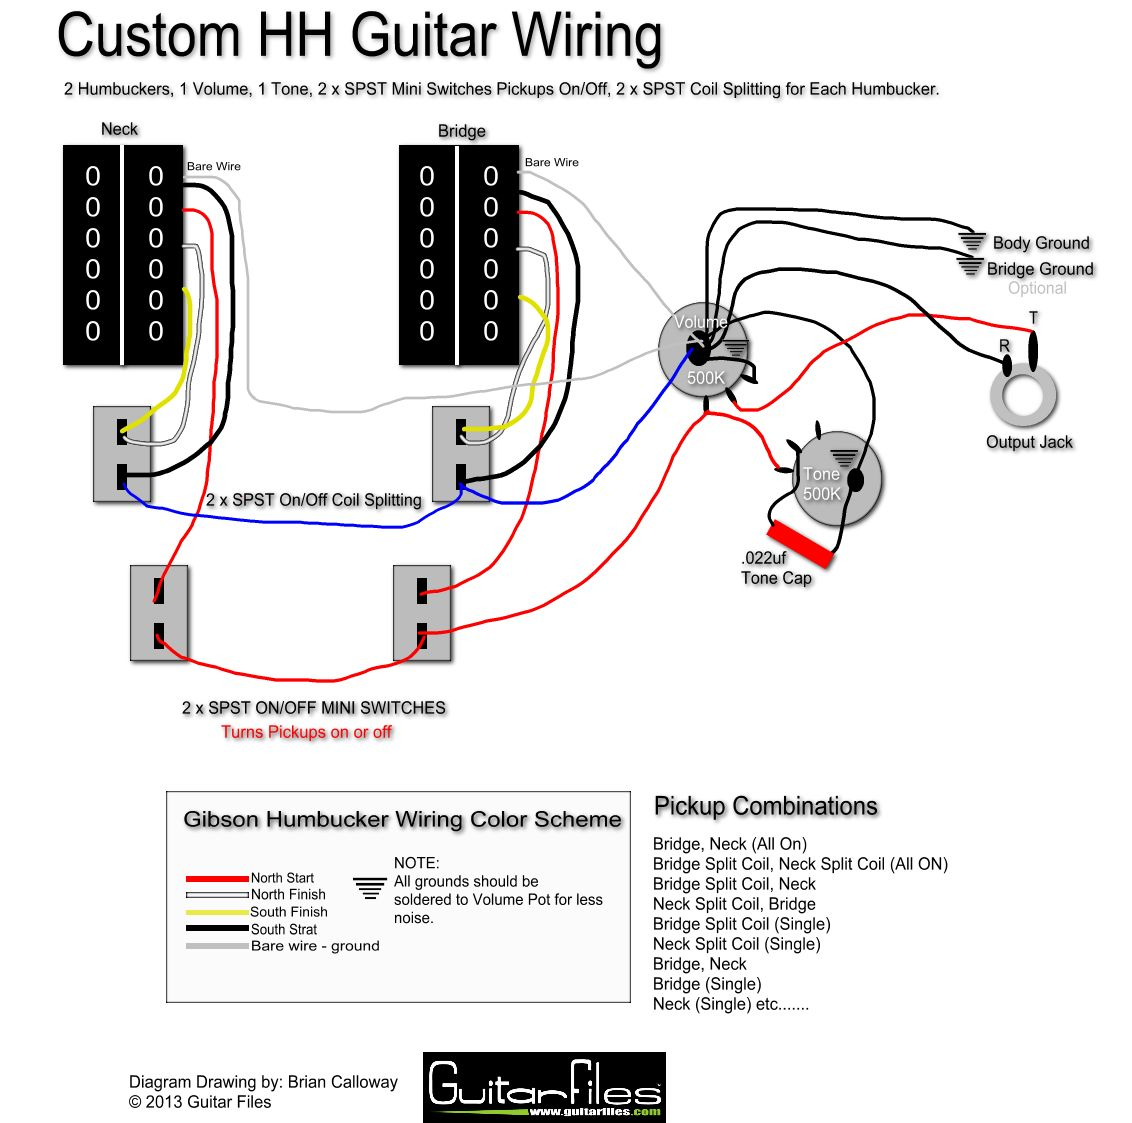 Custom Hh Wiring Diagram With Spst Coil Splitting And Spst Switching Ultimate Guitar Chords Guitar Pickups Guitar Tech